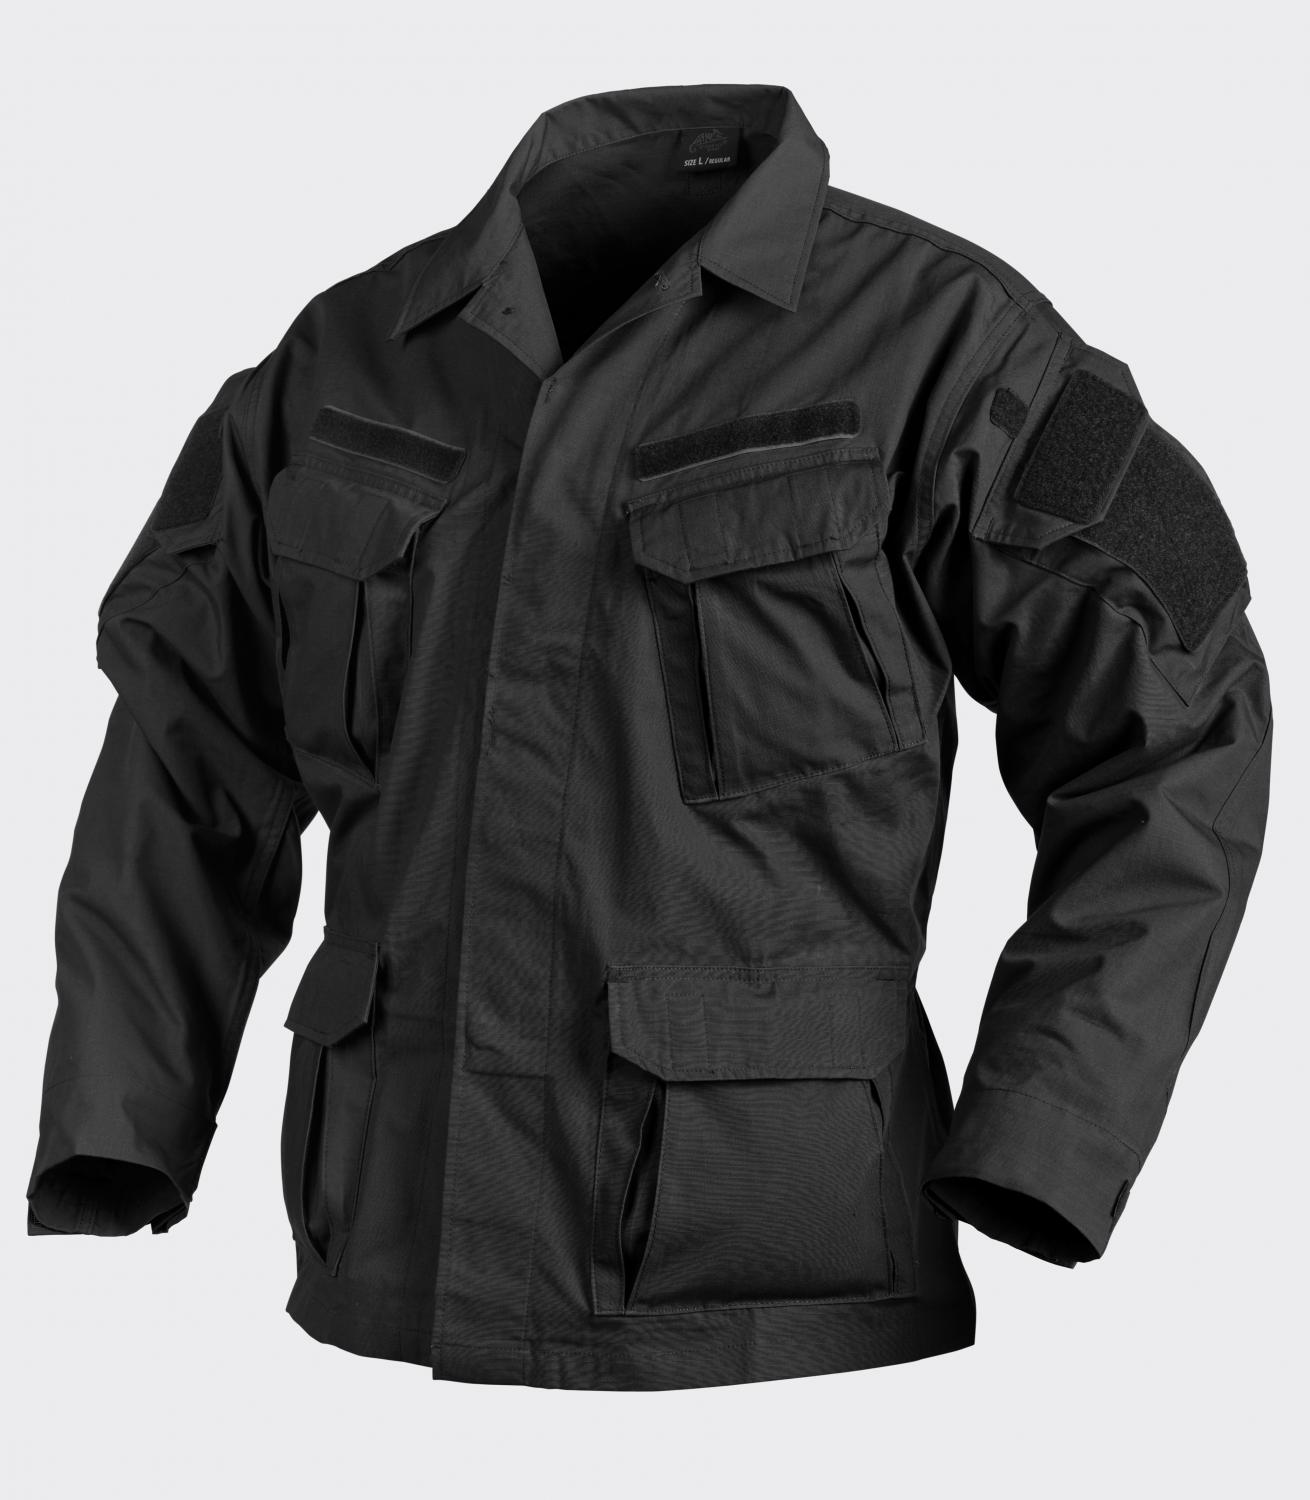 SFU (Special Forces Uniform) NEXT® - PolyCotton Ripstop Black